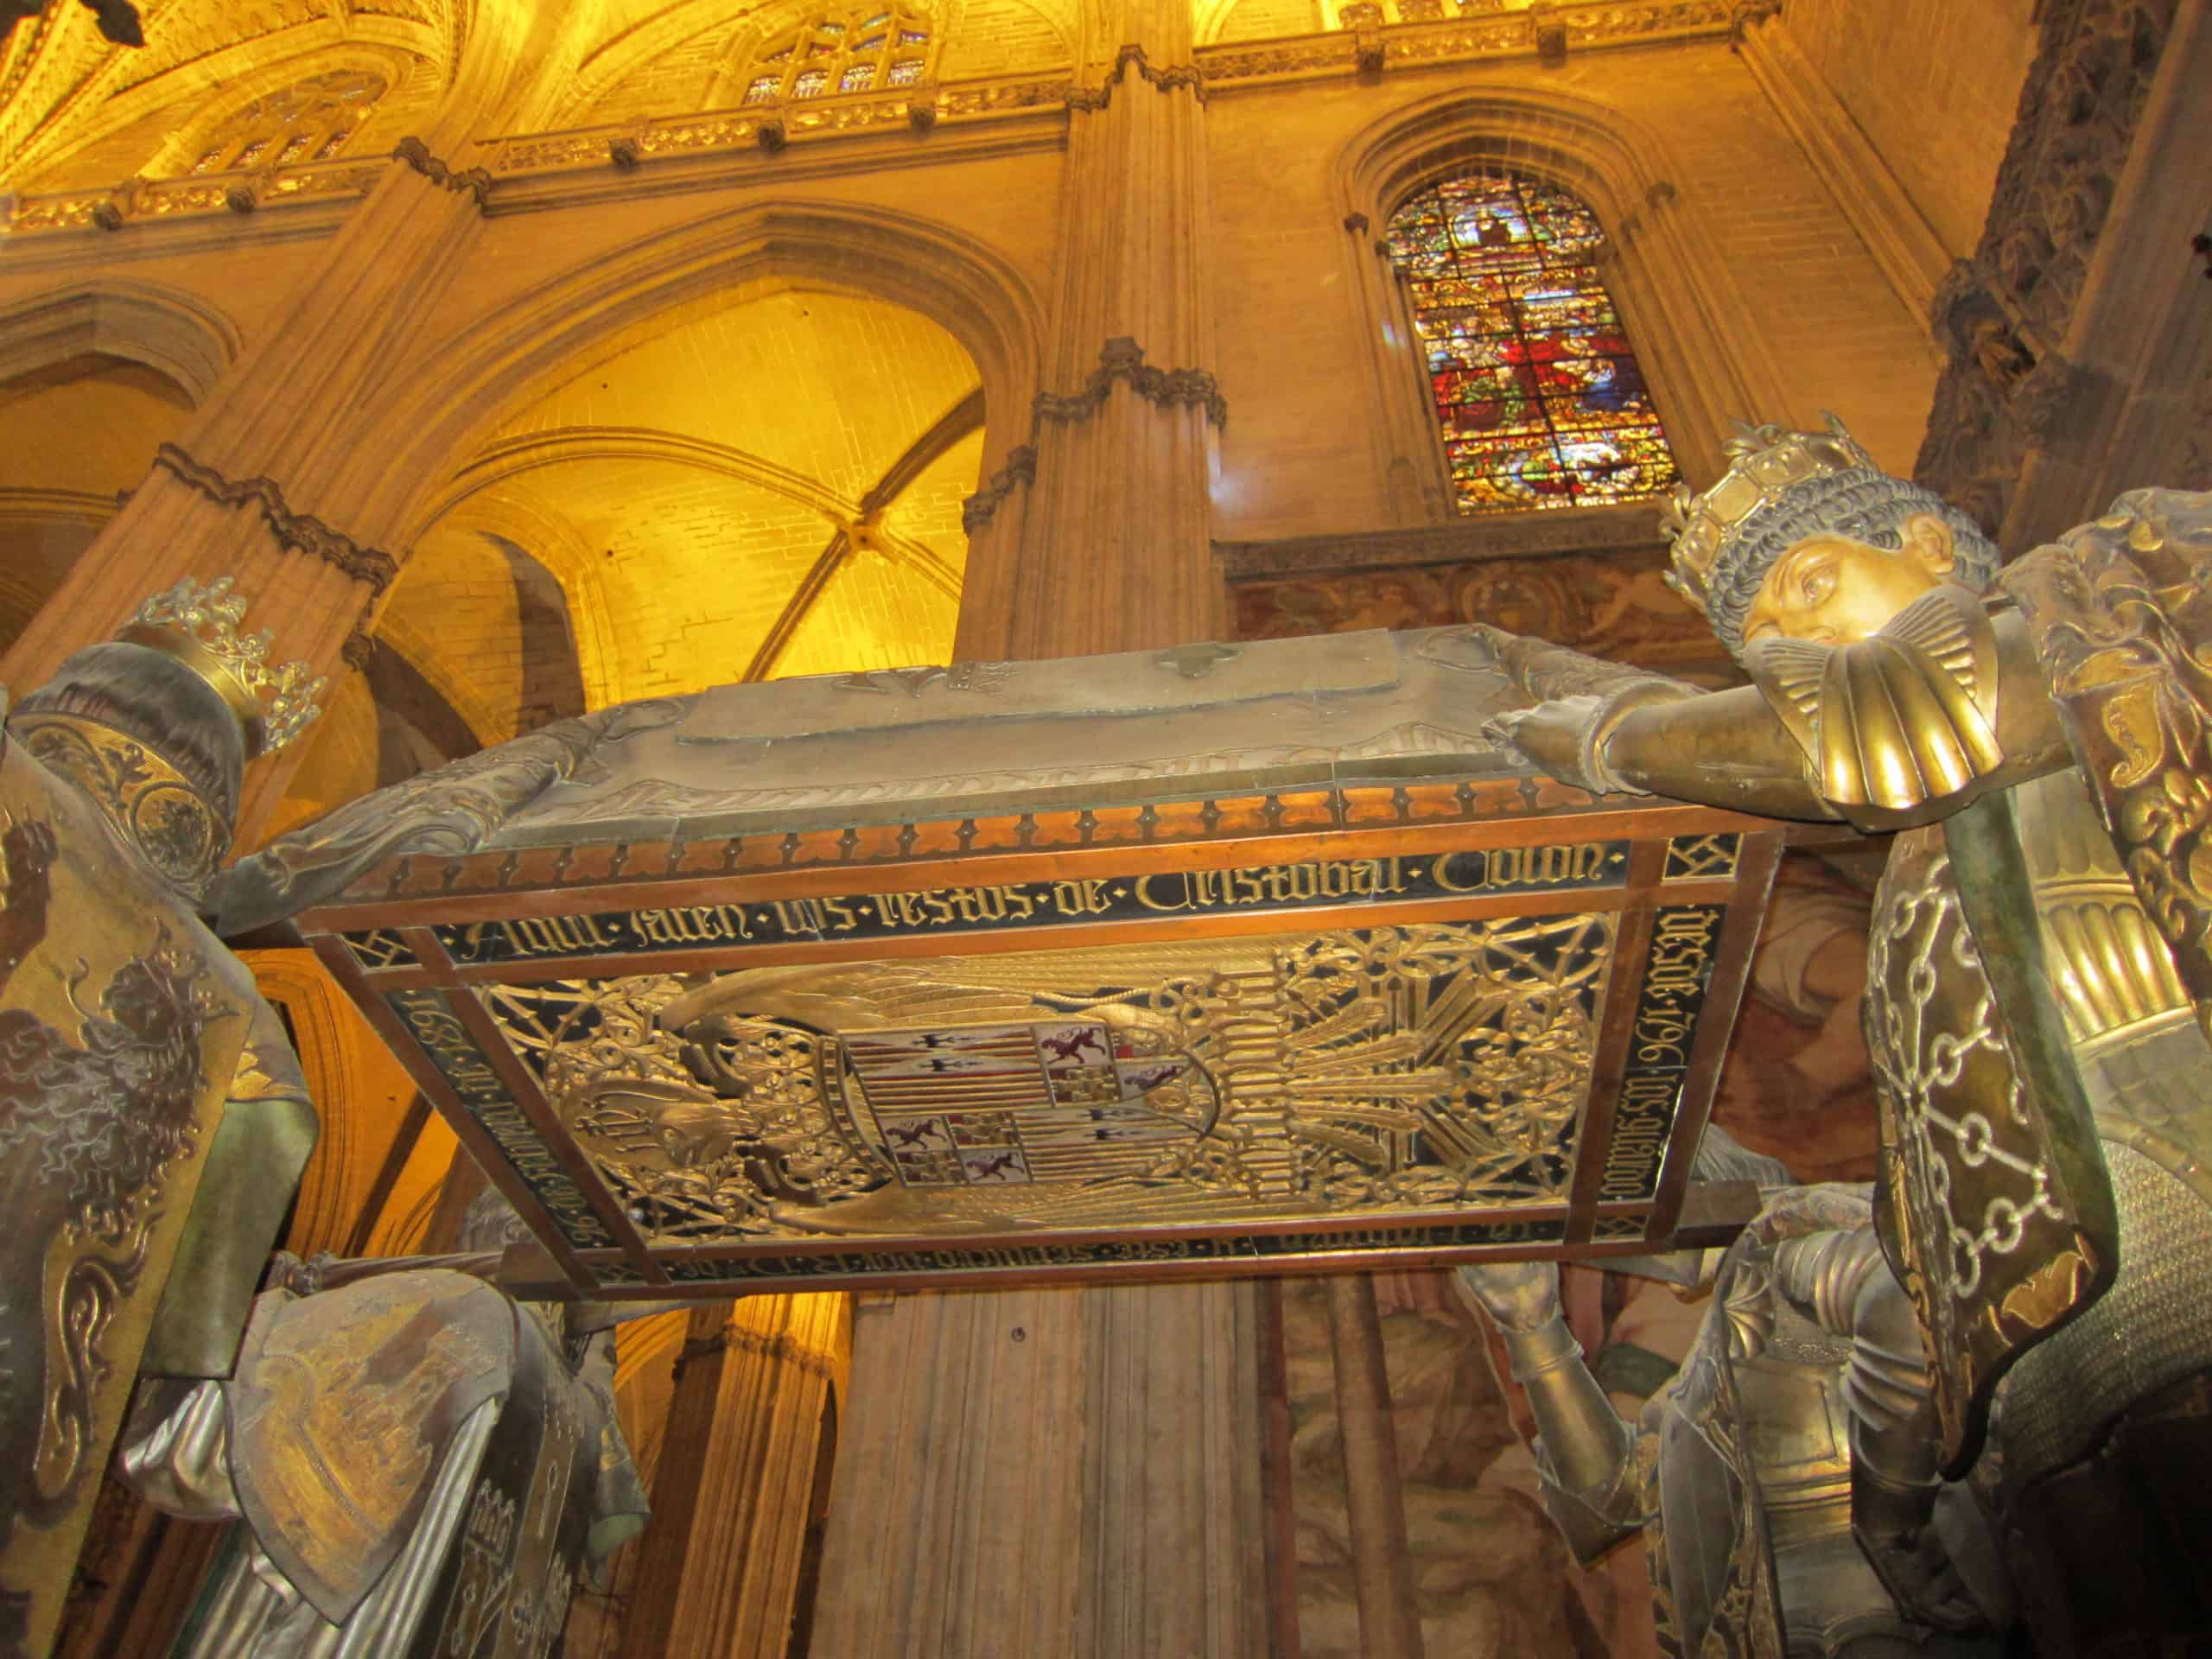 The tomb of Christopher Columbus in Seville Cathedral.